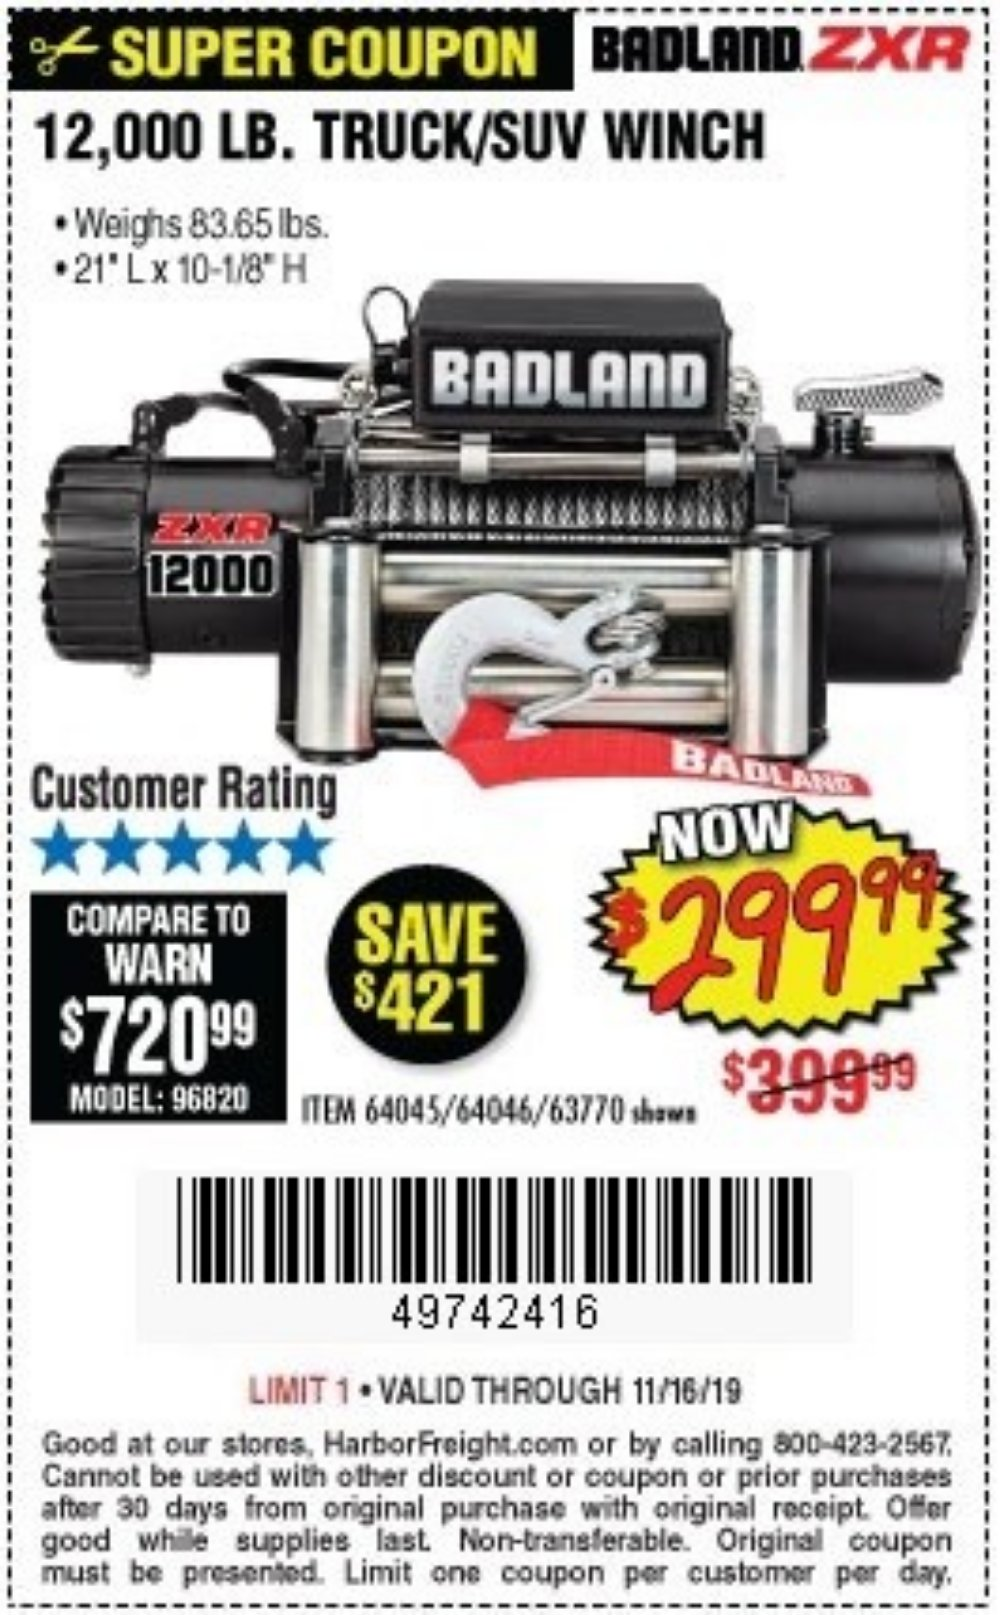 Harbor Freight Coupon, HF Coupons - Badland Zxr12000 12000 Lb. Off-road Vehicle Electric Winch With Automatic Load-holding Brake